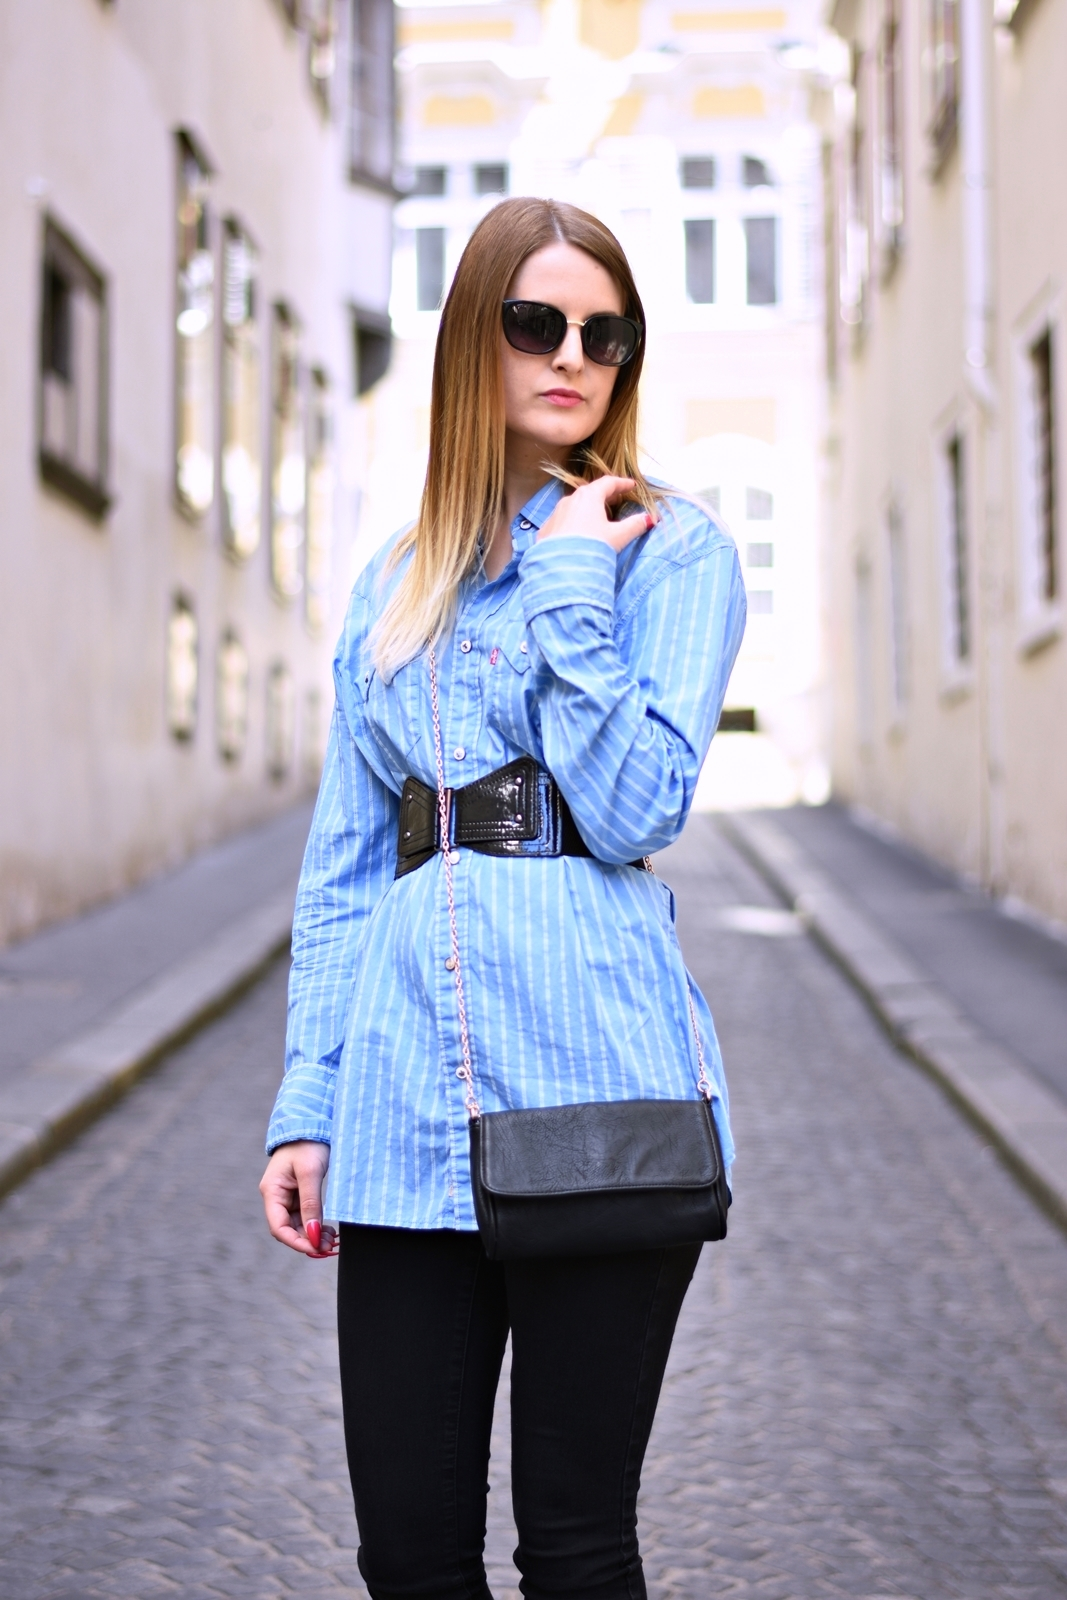 Fashion Challenge - Stripes - Outfit - Fashion - Mode - Streifen - Fashionladyloves